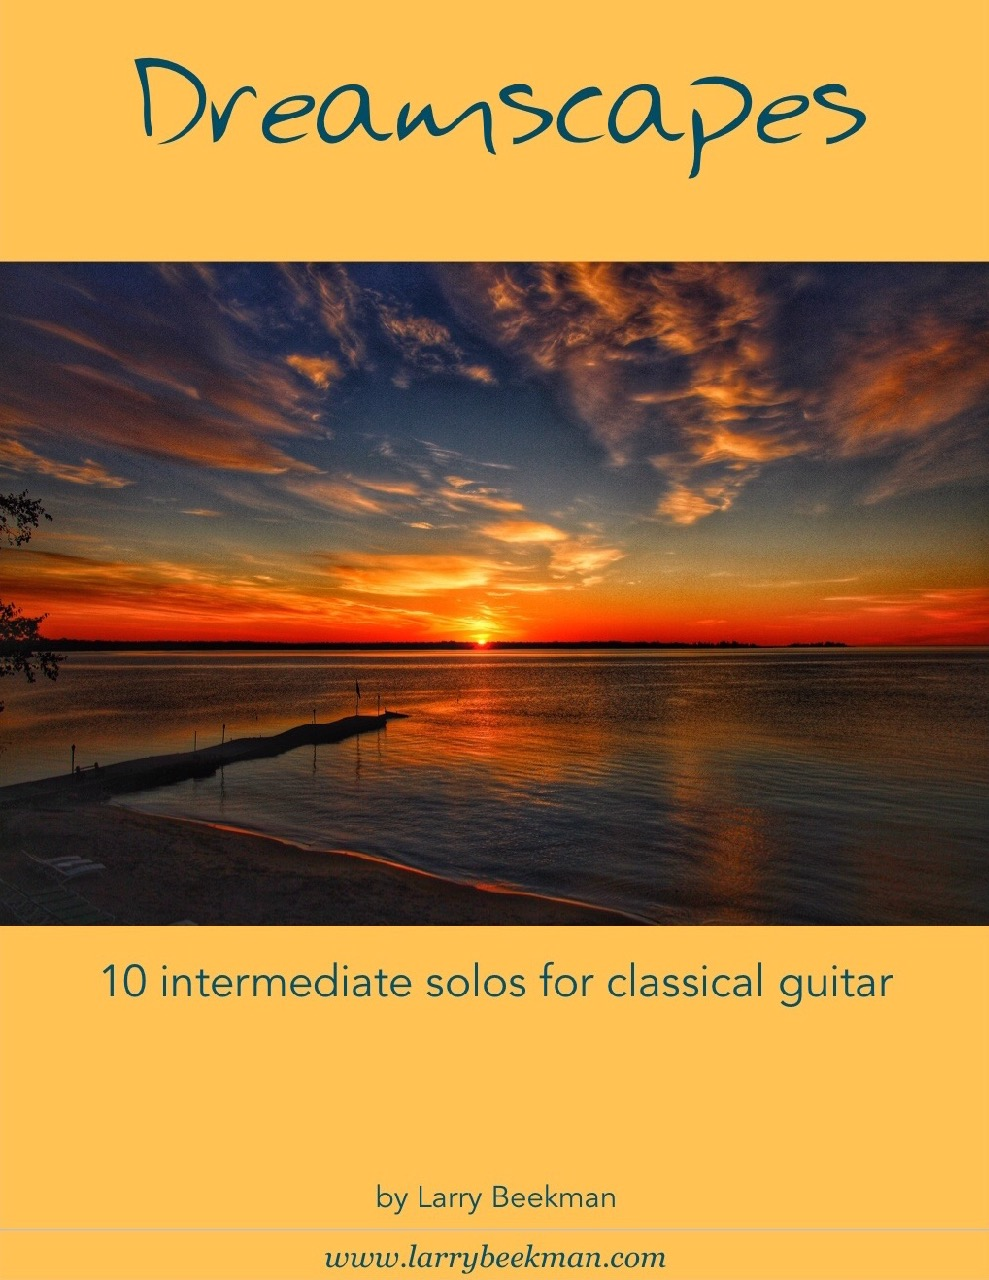 pdf classical guitar books purchase pnline